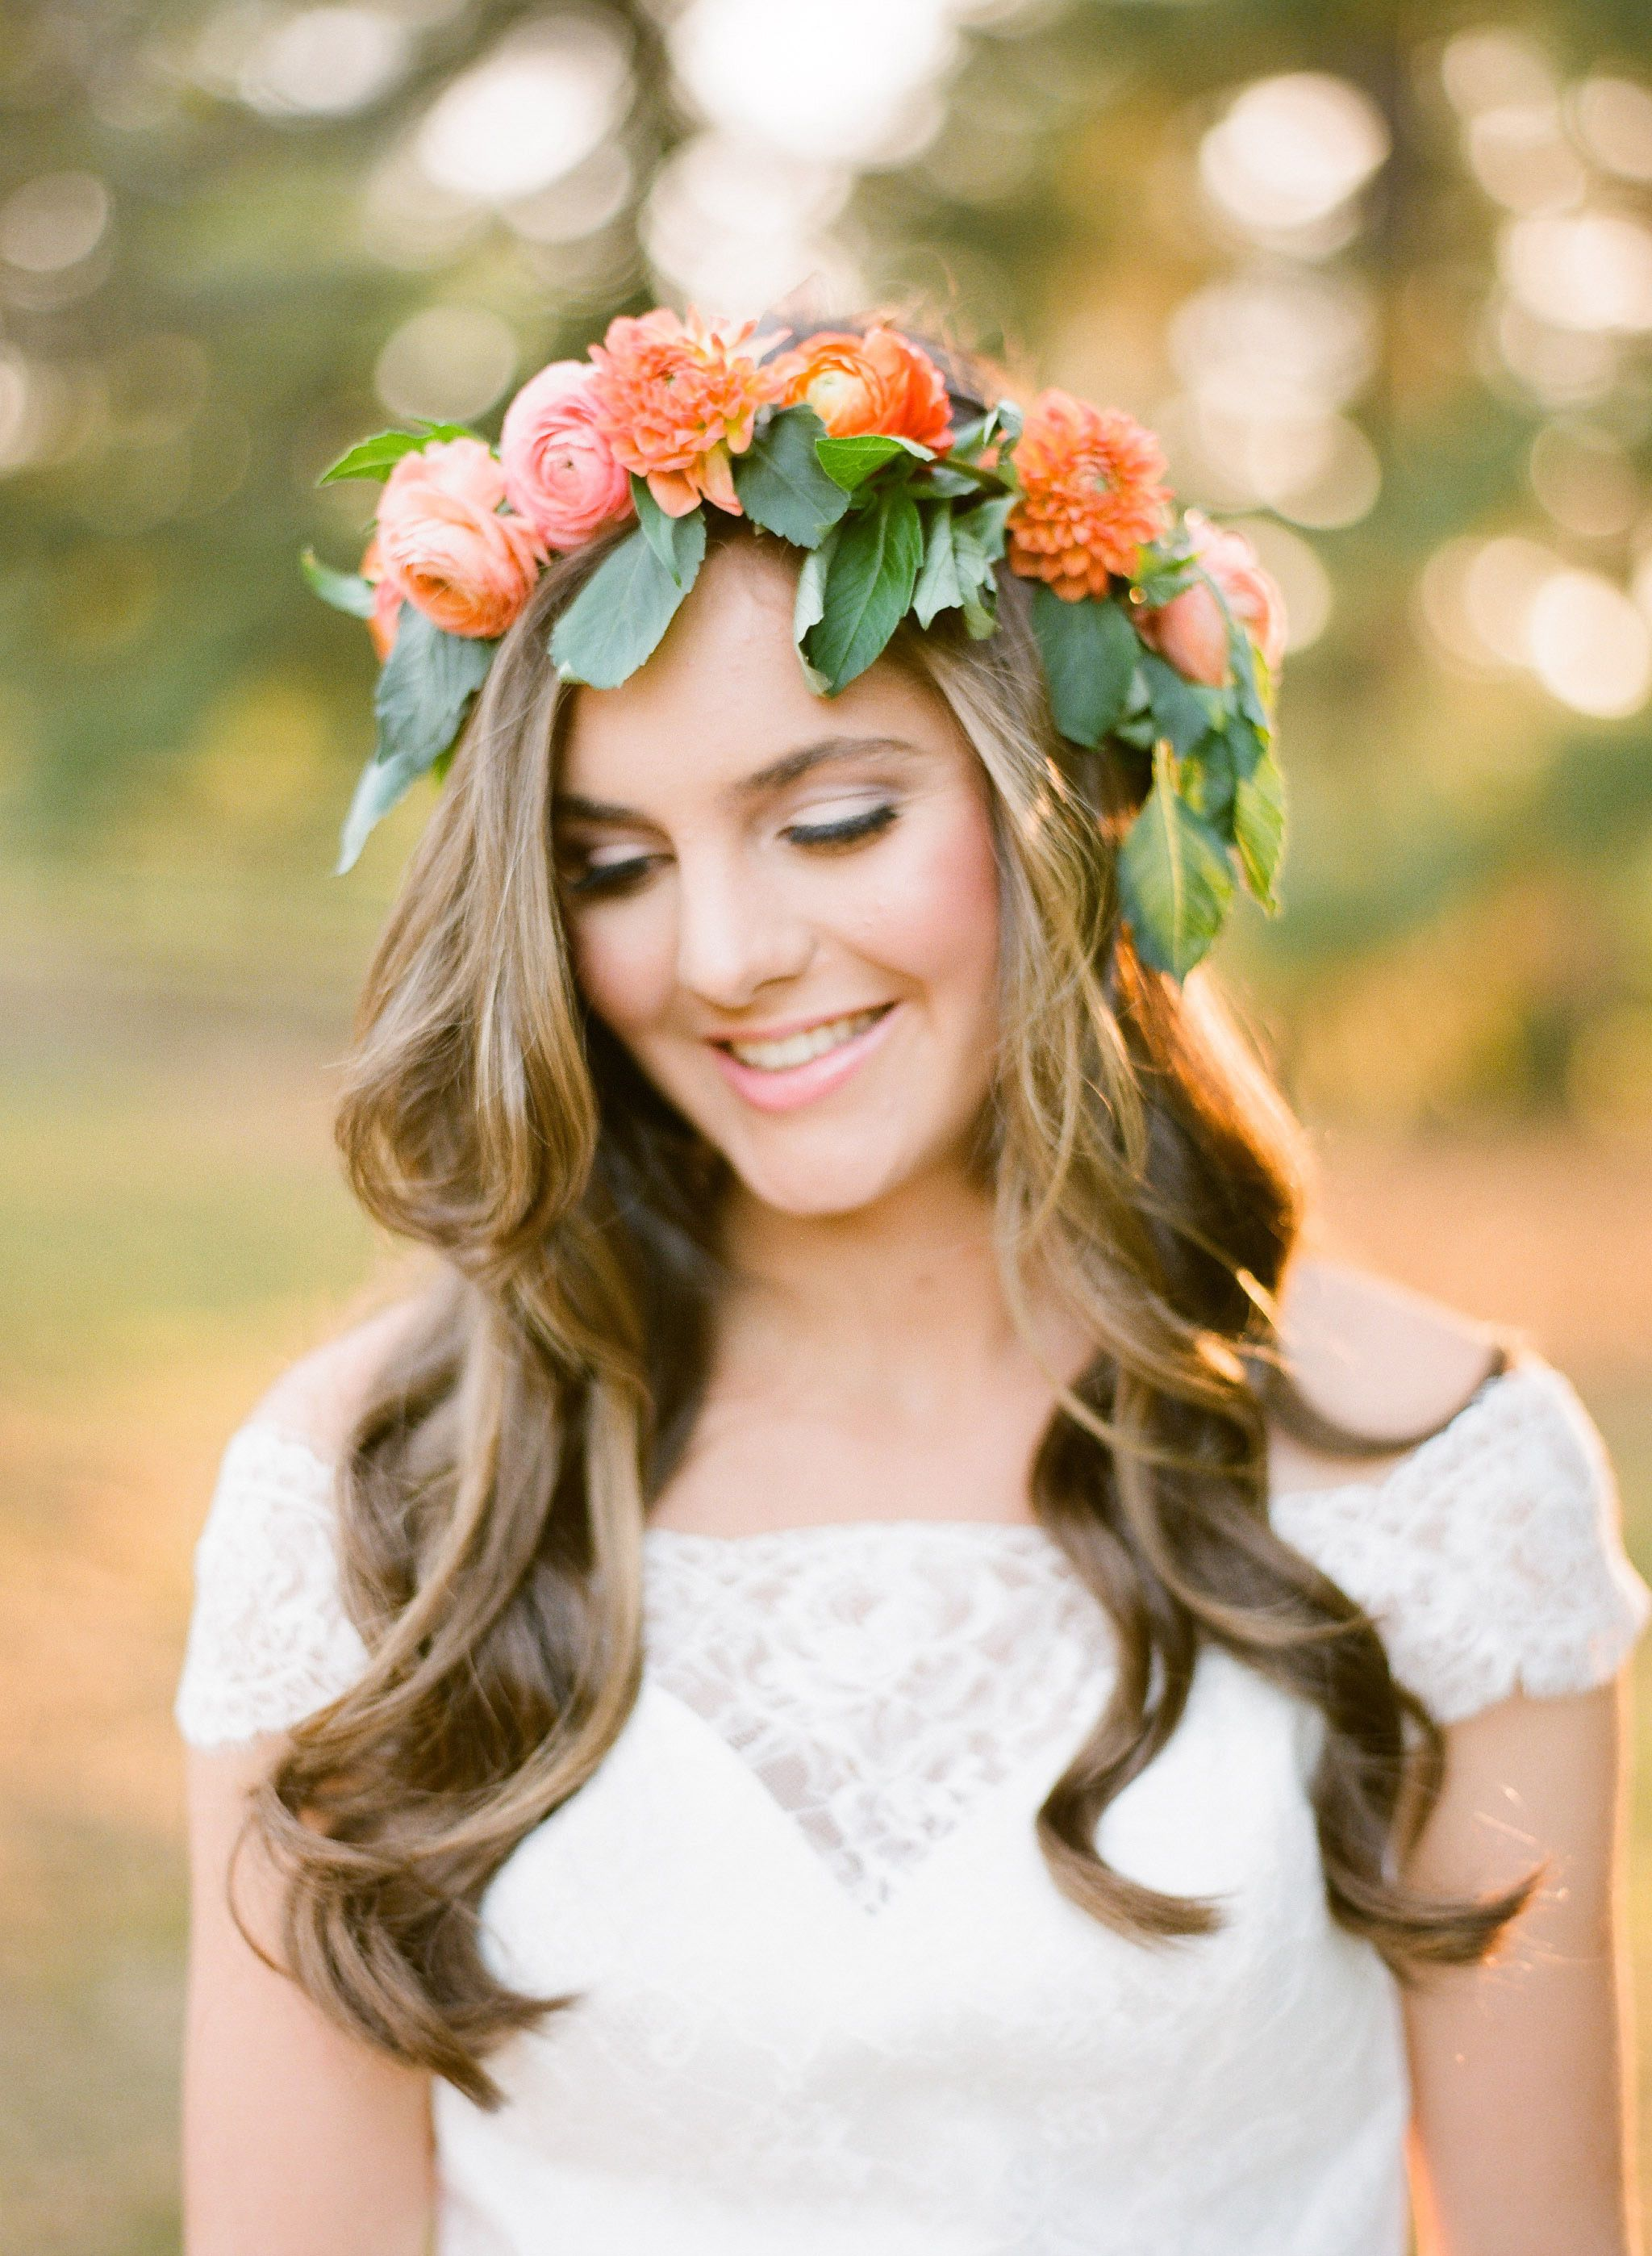 Super Peach Wedding Inspiration Full Of Color Wedding Flower And Short Hairstyles For Black Women Fulllsitofus